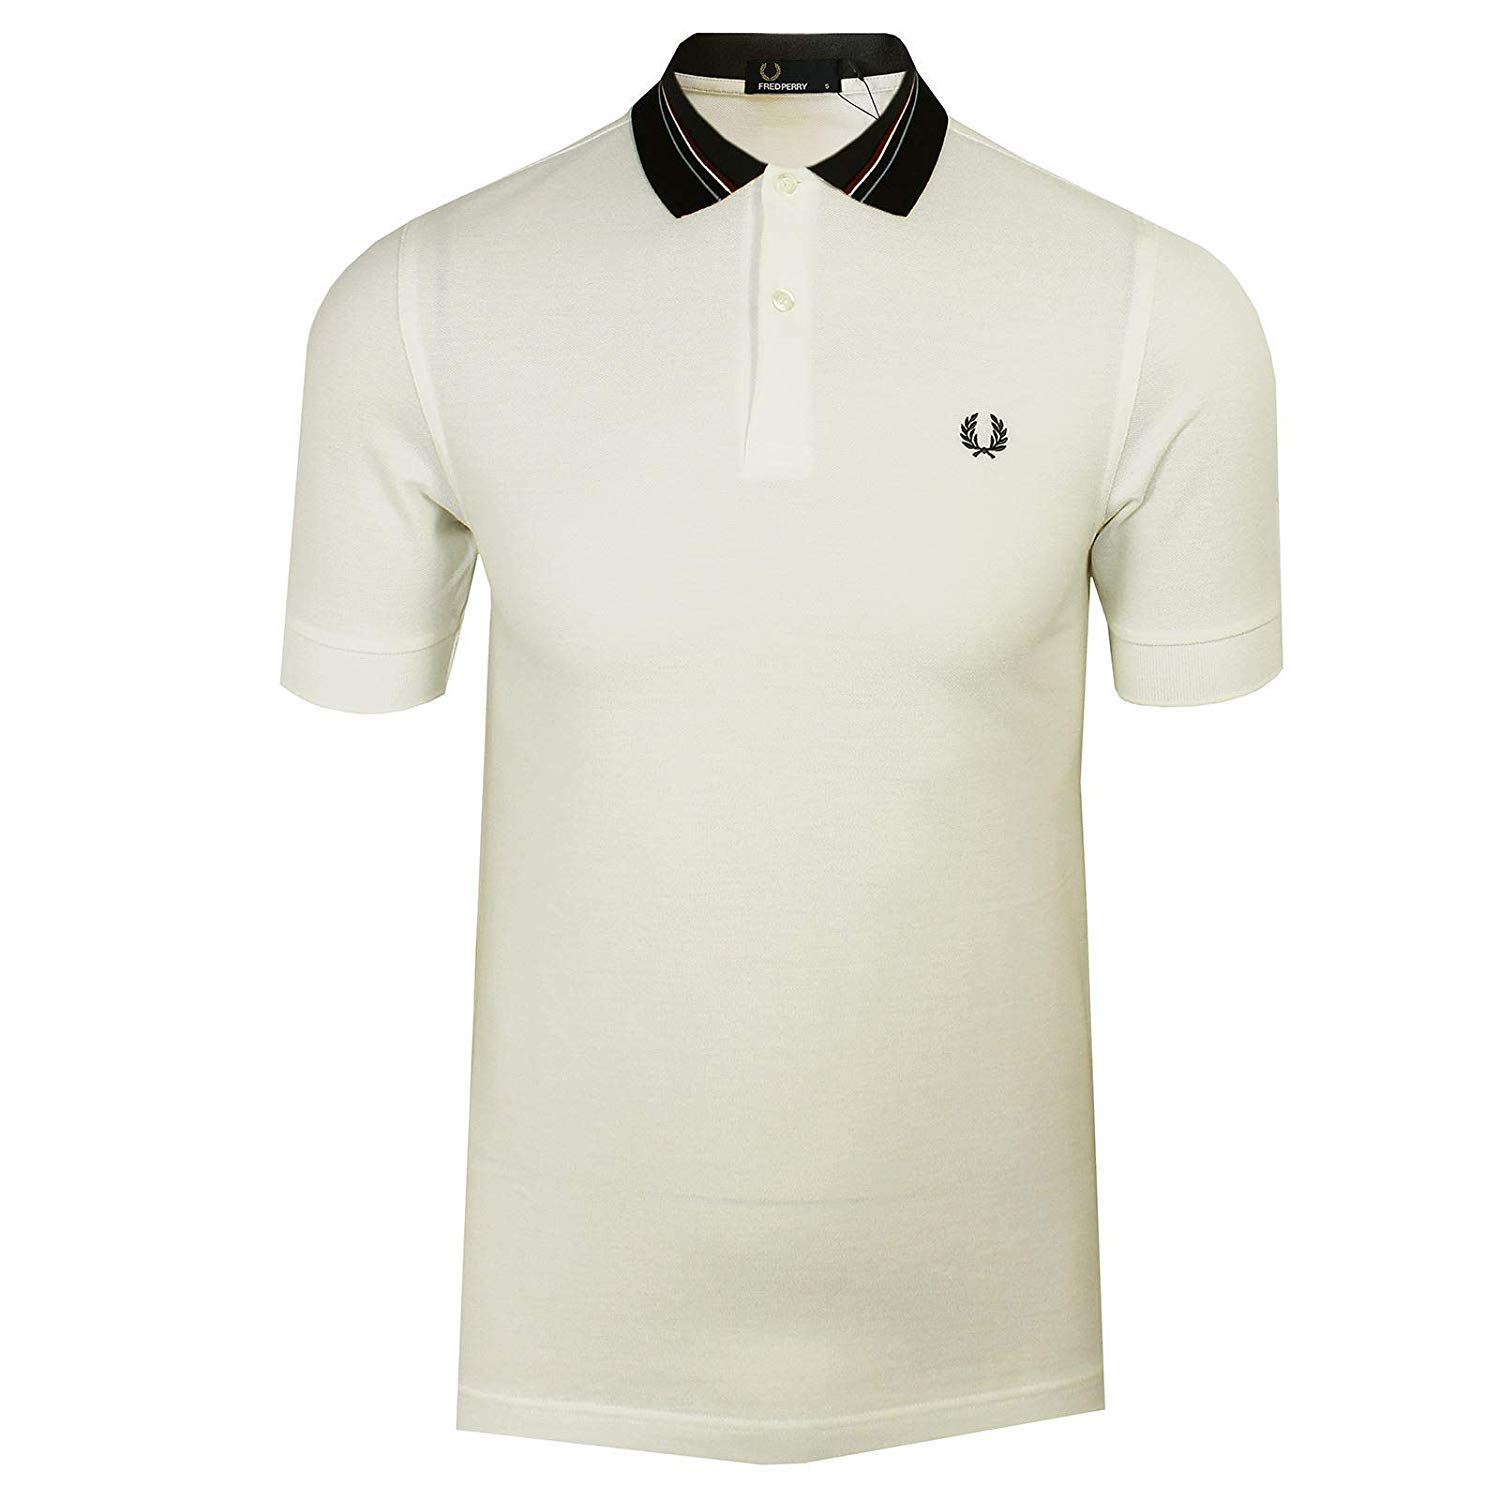 Fred Perry Stripe Collar Pique Shirt, Polo: Amazon.es: Ropa y ...